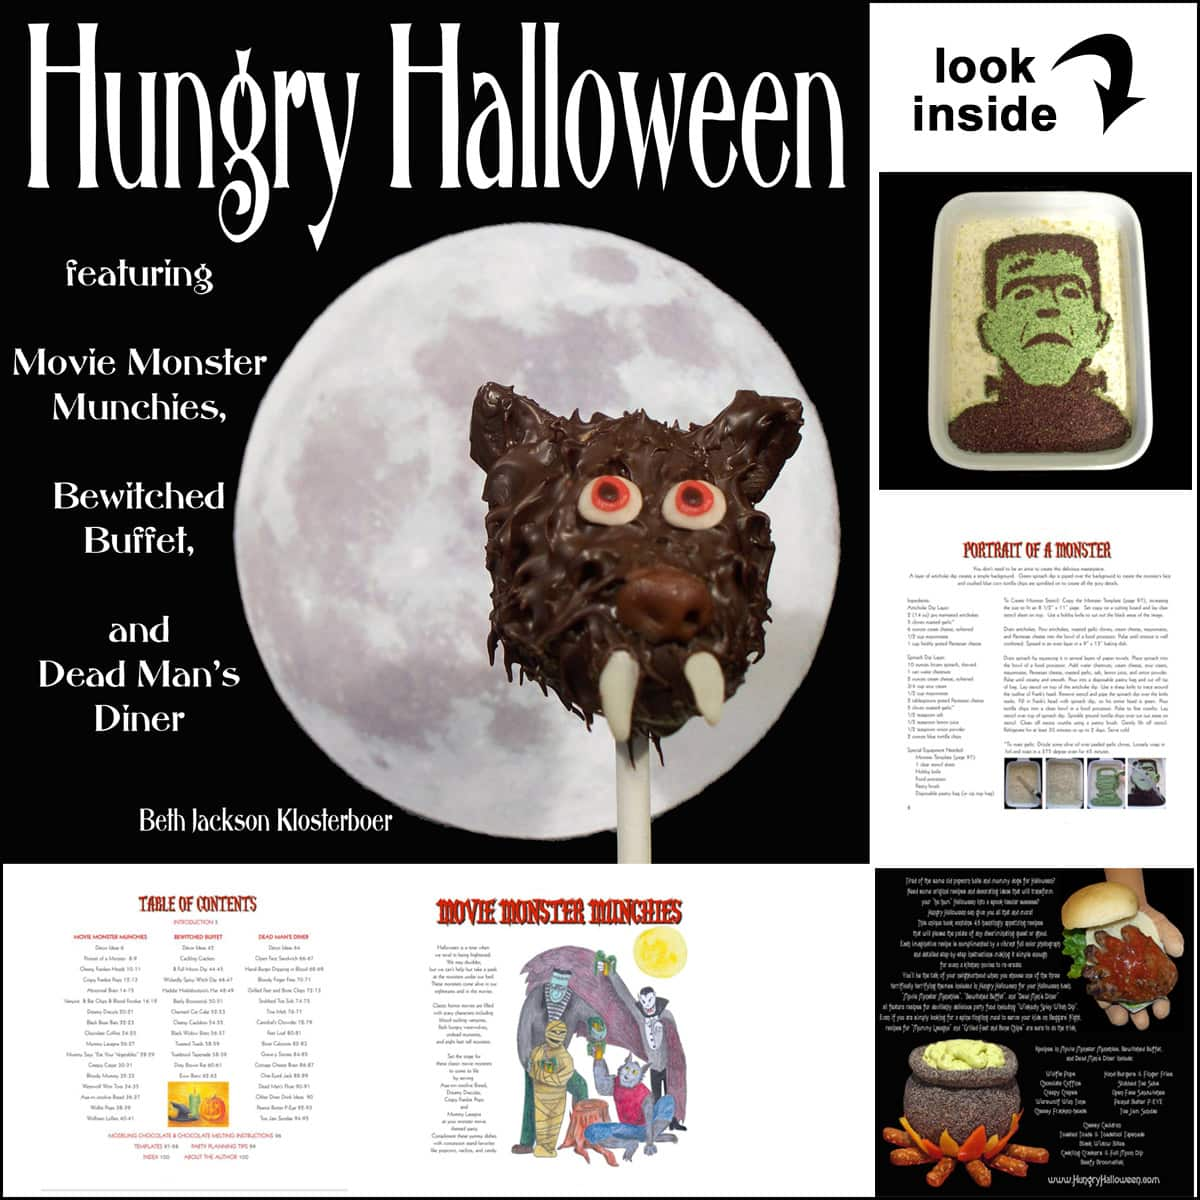 Hungry Halloween cookbook featuring werewolf cake pops, cheese ball cauldron, Frankenstein dip, and more.